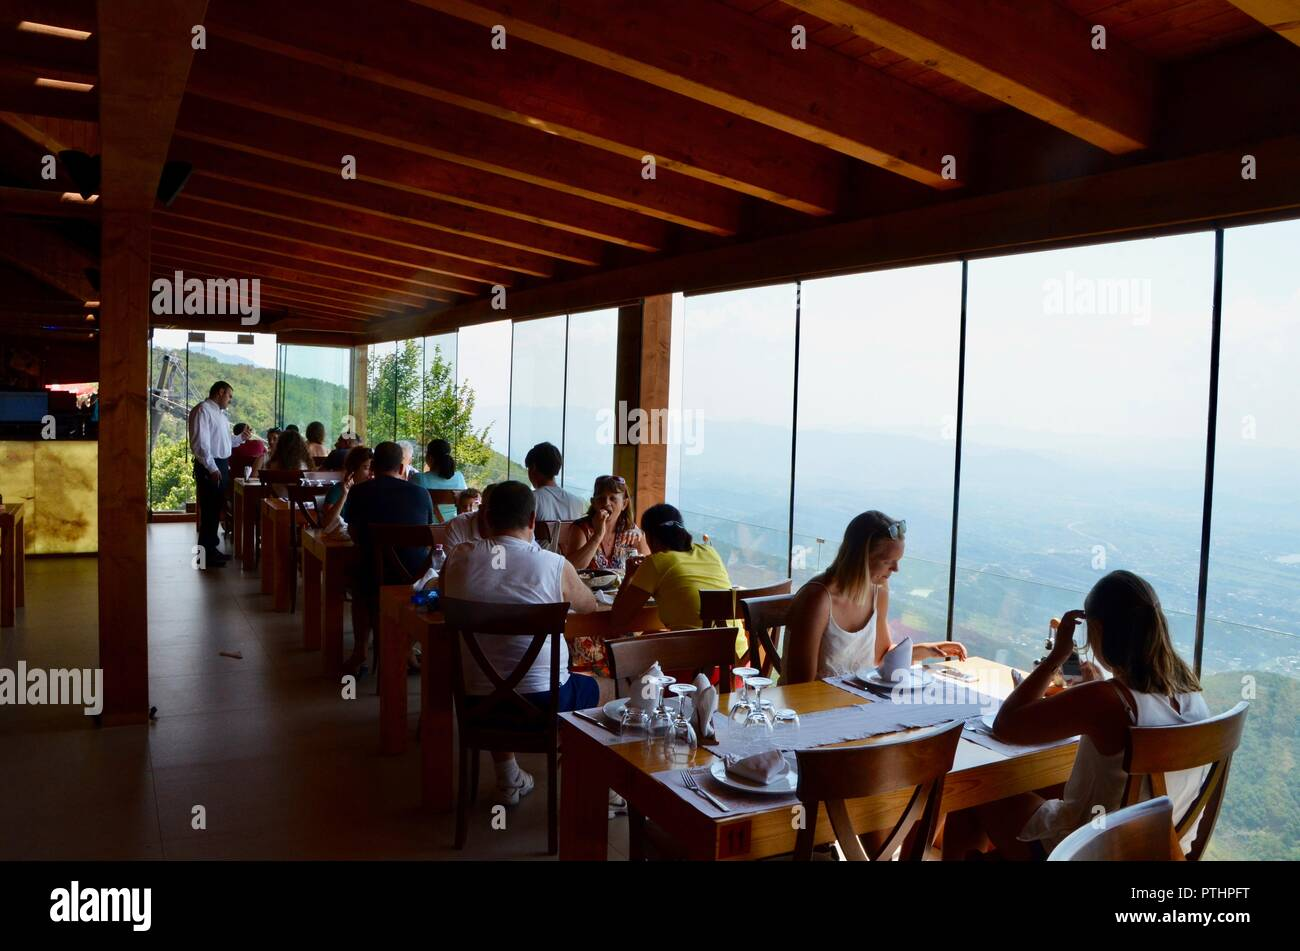 Ballkoni Dajtit restaurant offers amazing views of tirana after taking the djati express cable car albania - Stock Image